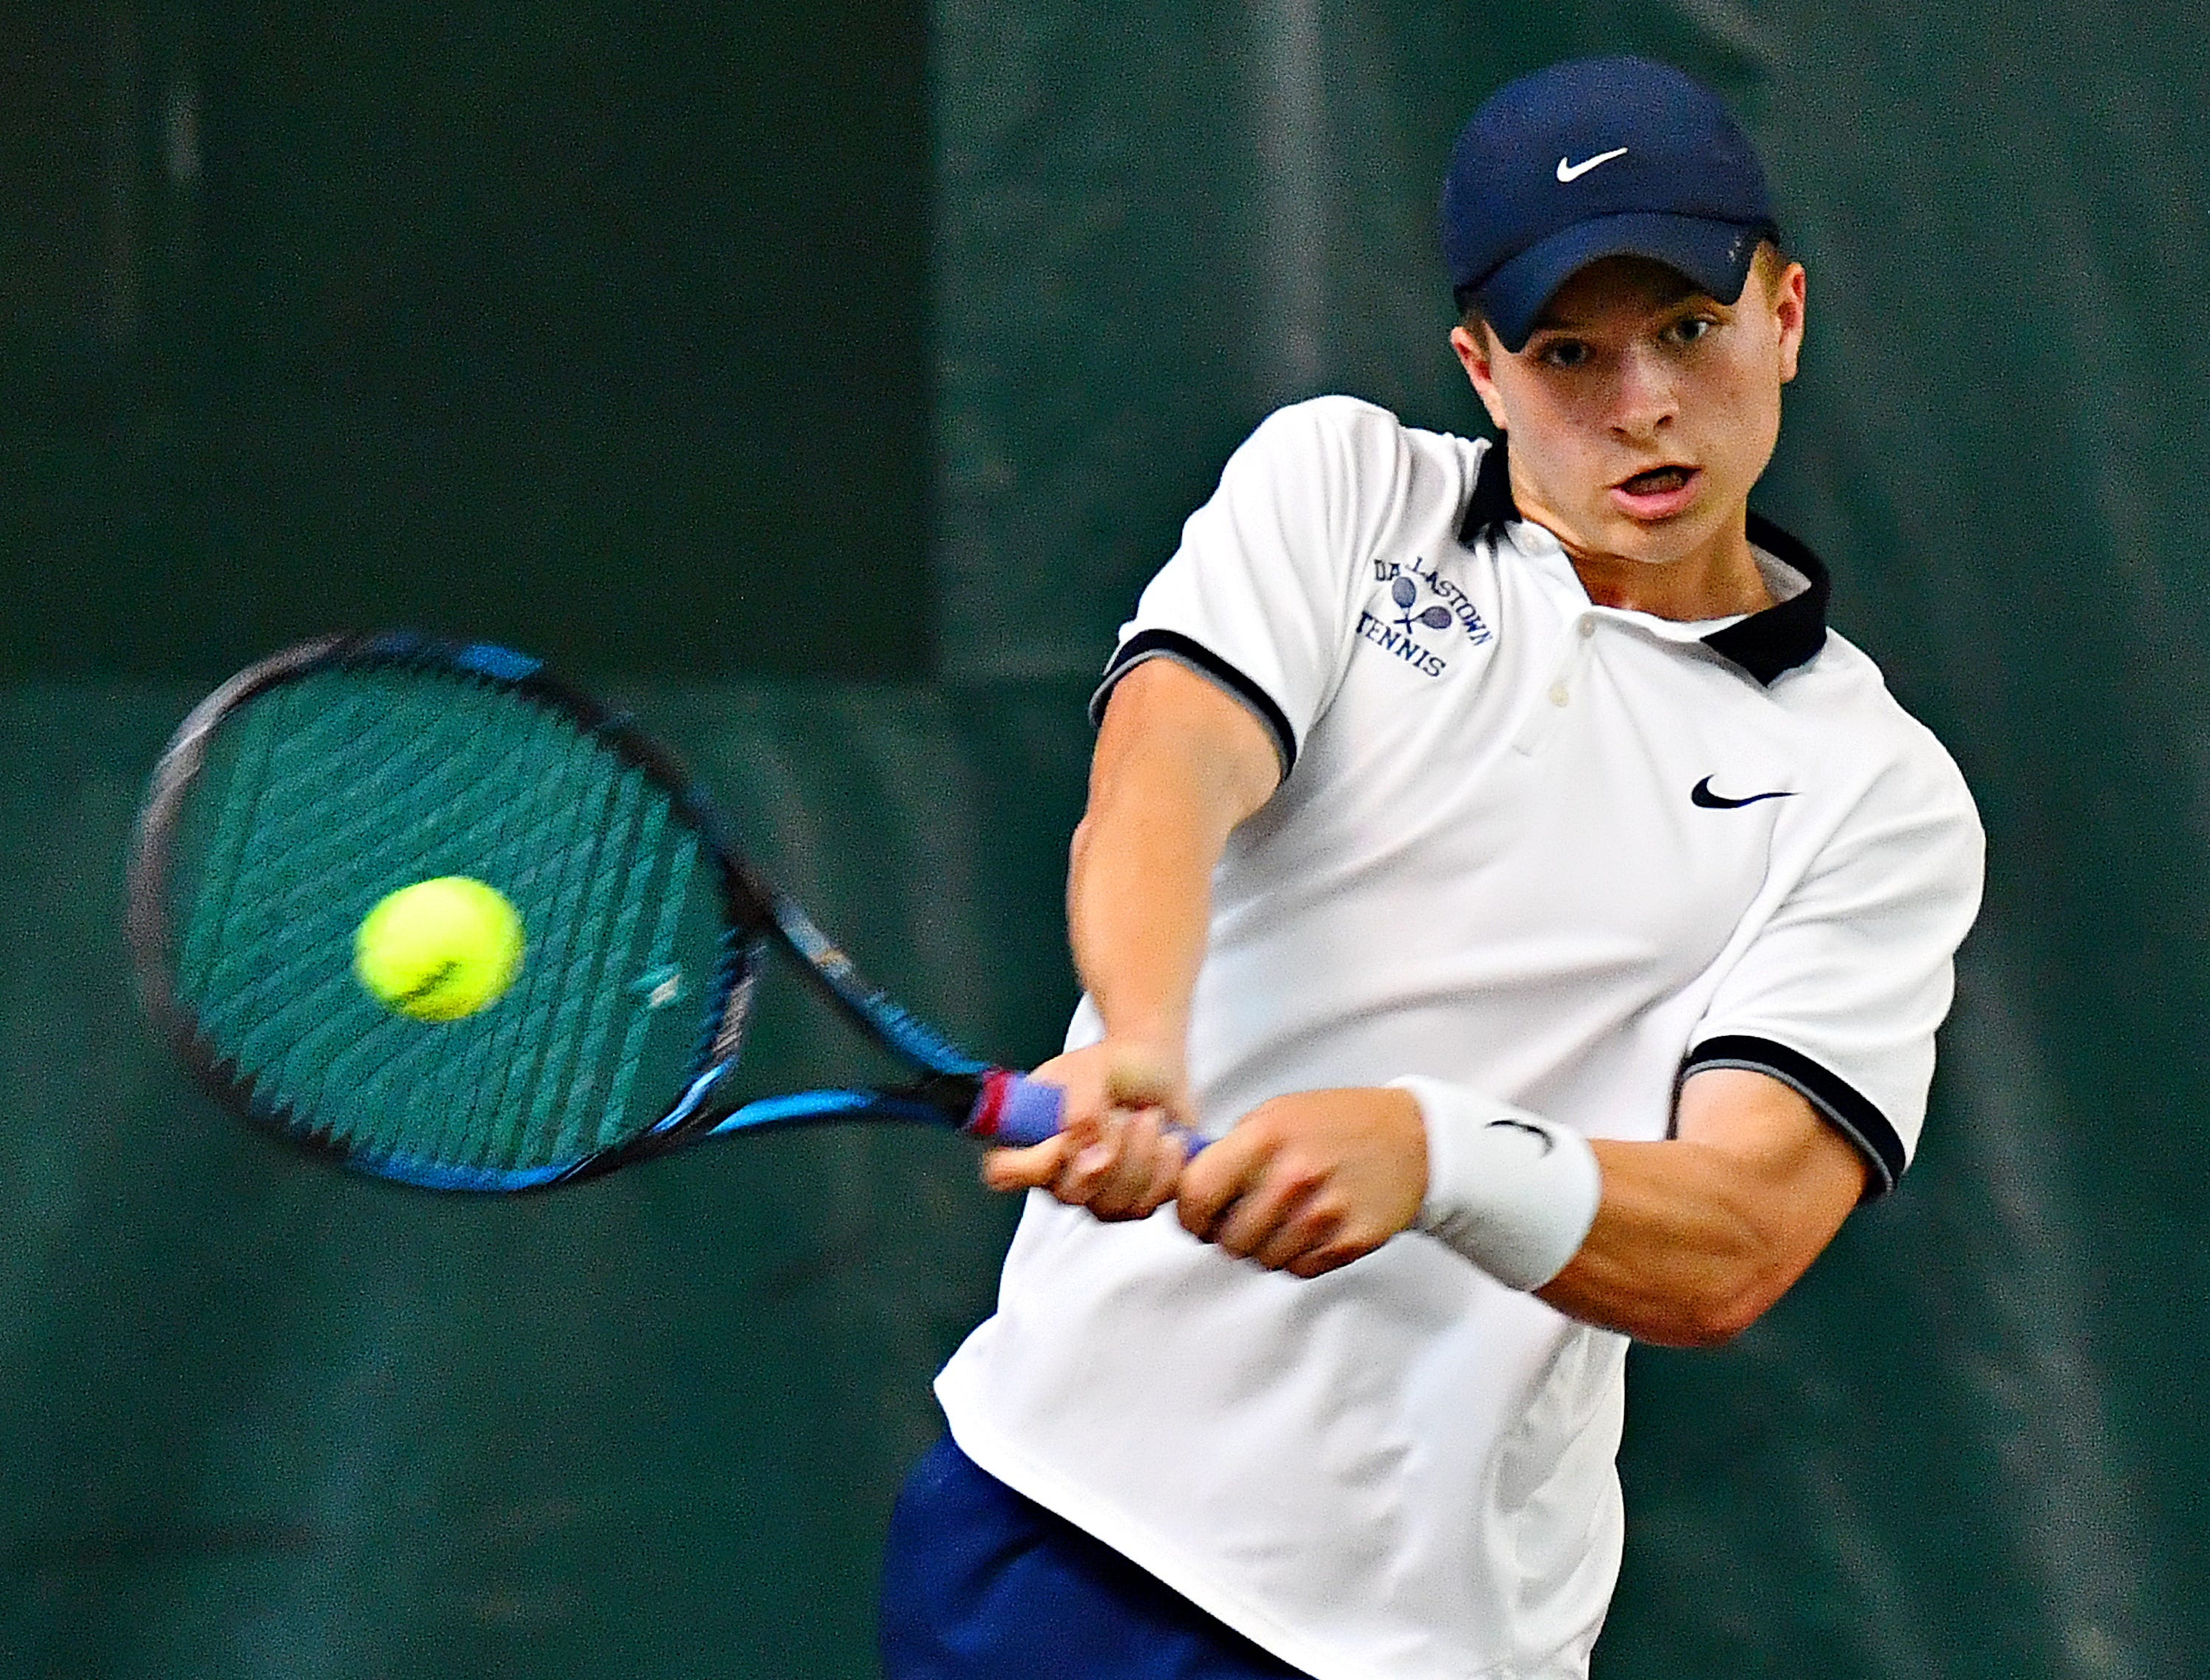 Dallastown's Holden Koons returns the ball to Hershey's Andreas Wingert during District III, Class 3-A boys' tennis team championship action at Hershey Raquet Club in Hershey, Thursday, May 9, 2019. Koons would win the match and Hershey would win the title. Dawn J. Sagert photo